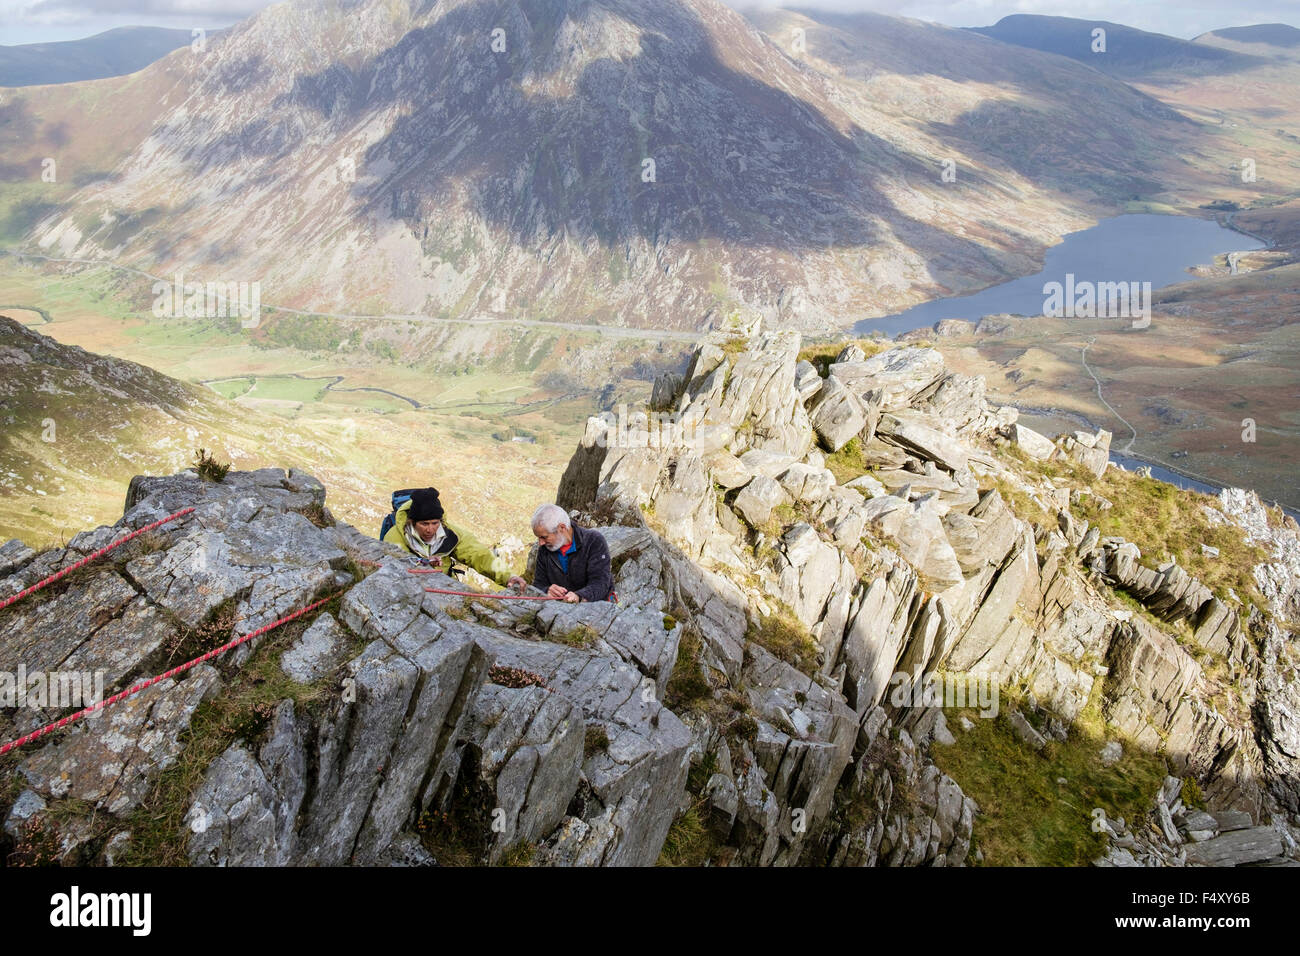 Hikers scrambling using a safety rope on Y Garn north east ridge high above Ogwen Valley in mountains of Snowdonia - Stock Image